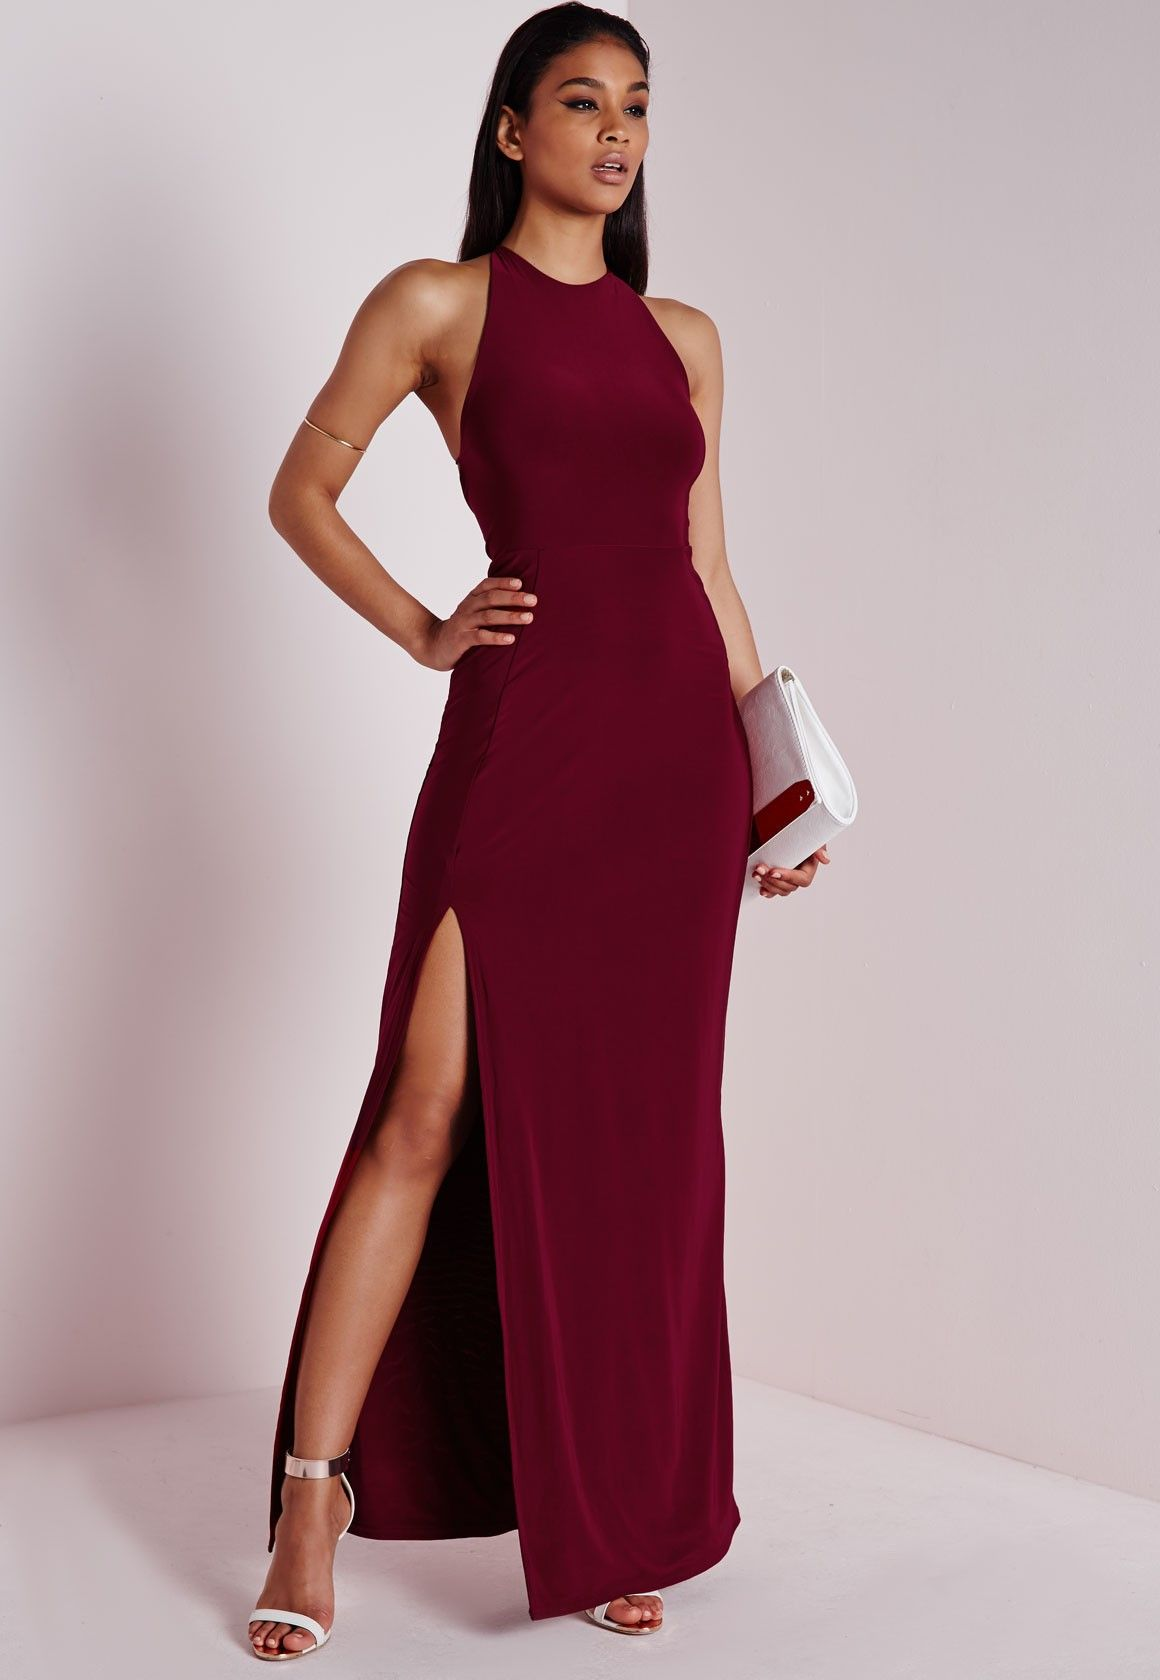 Wedding Burgundy Prom Dress off shoulder mermaid long burgundy satin prom dress with lace top dresses and the shoulder